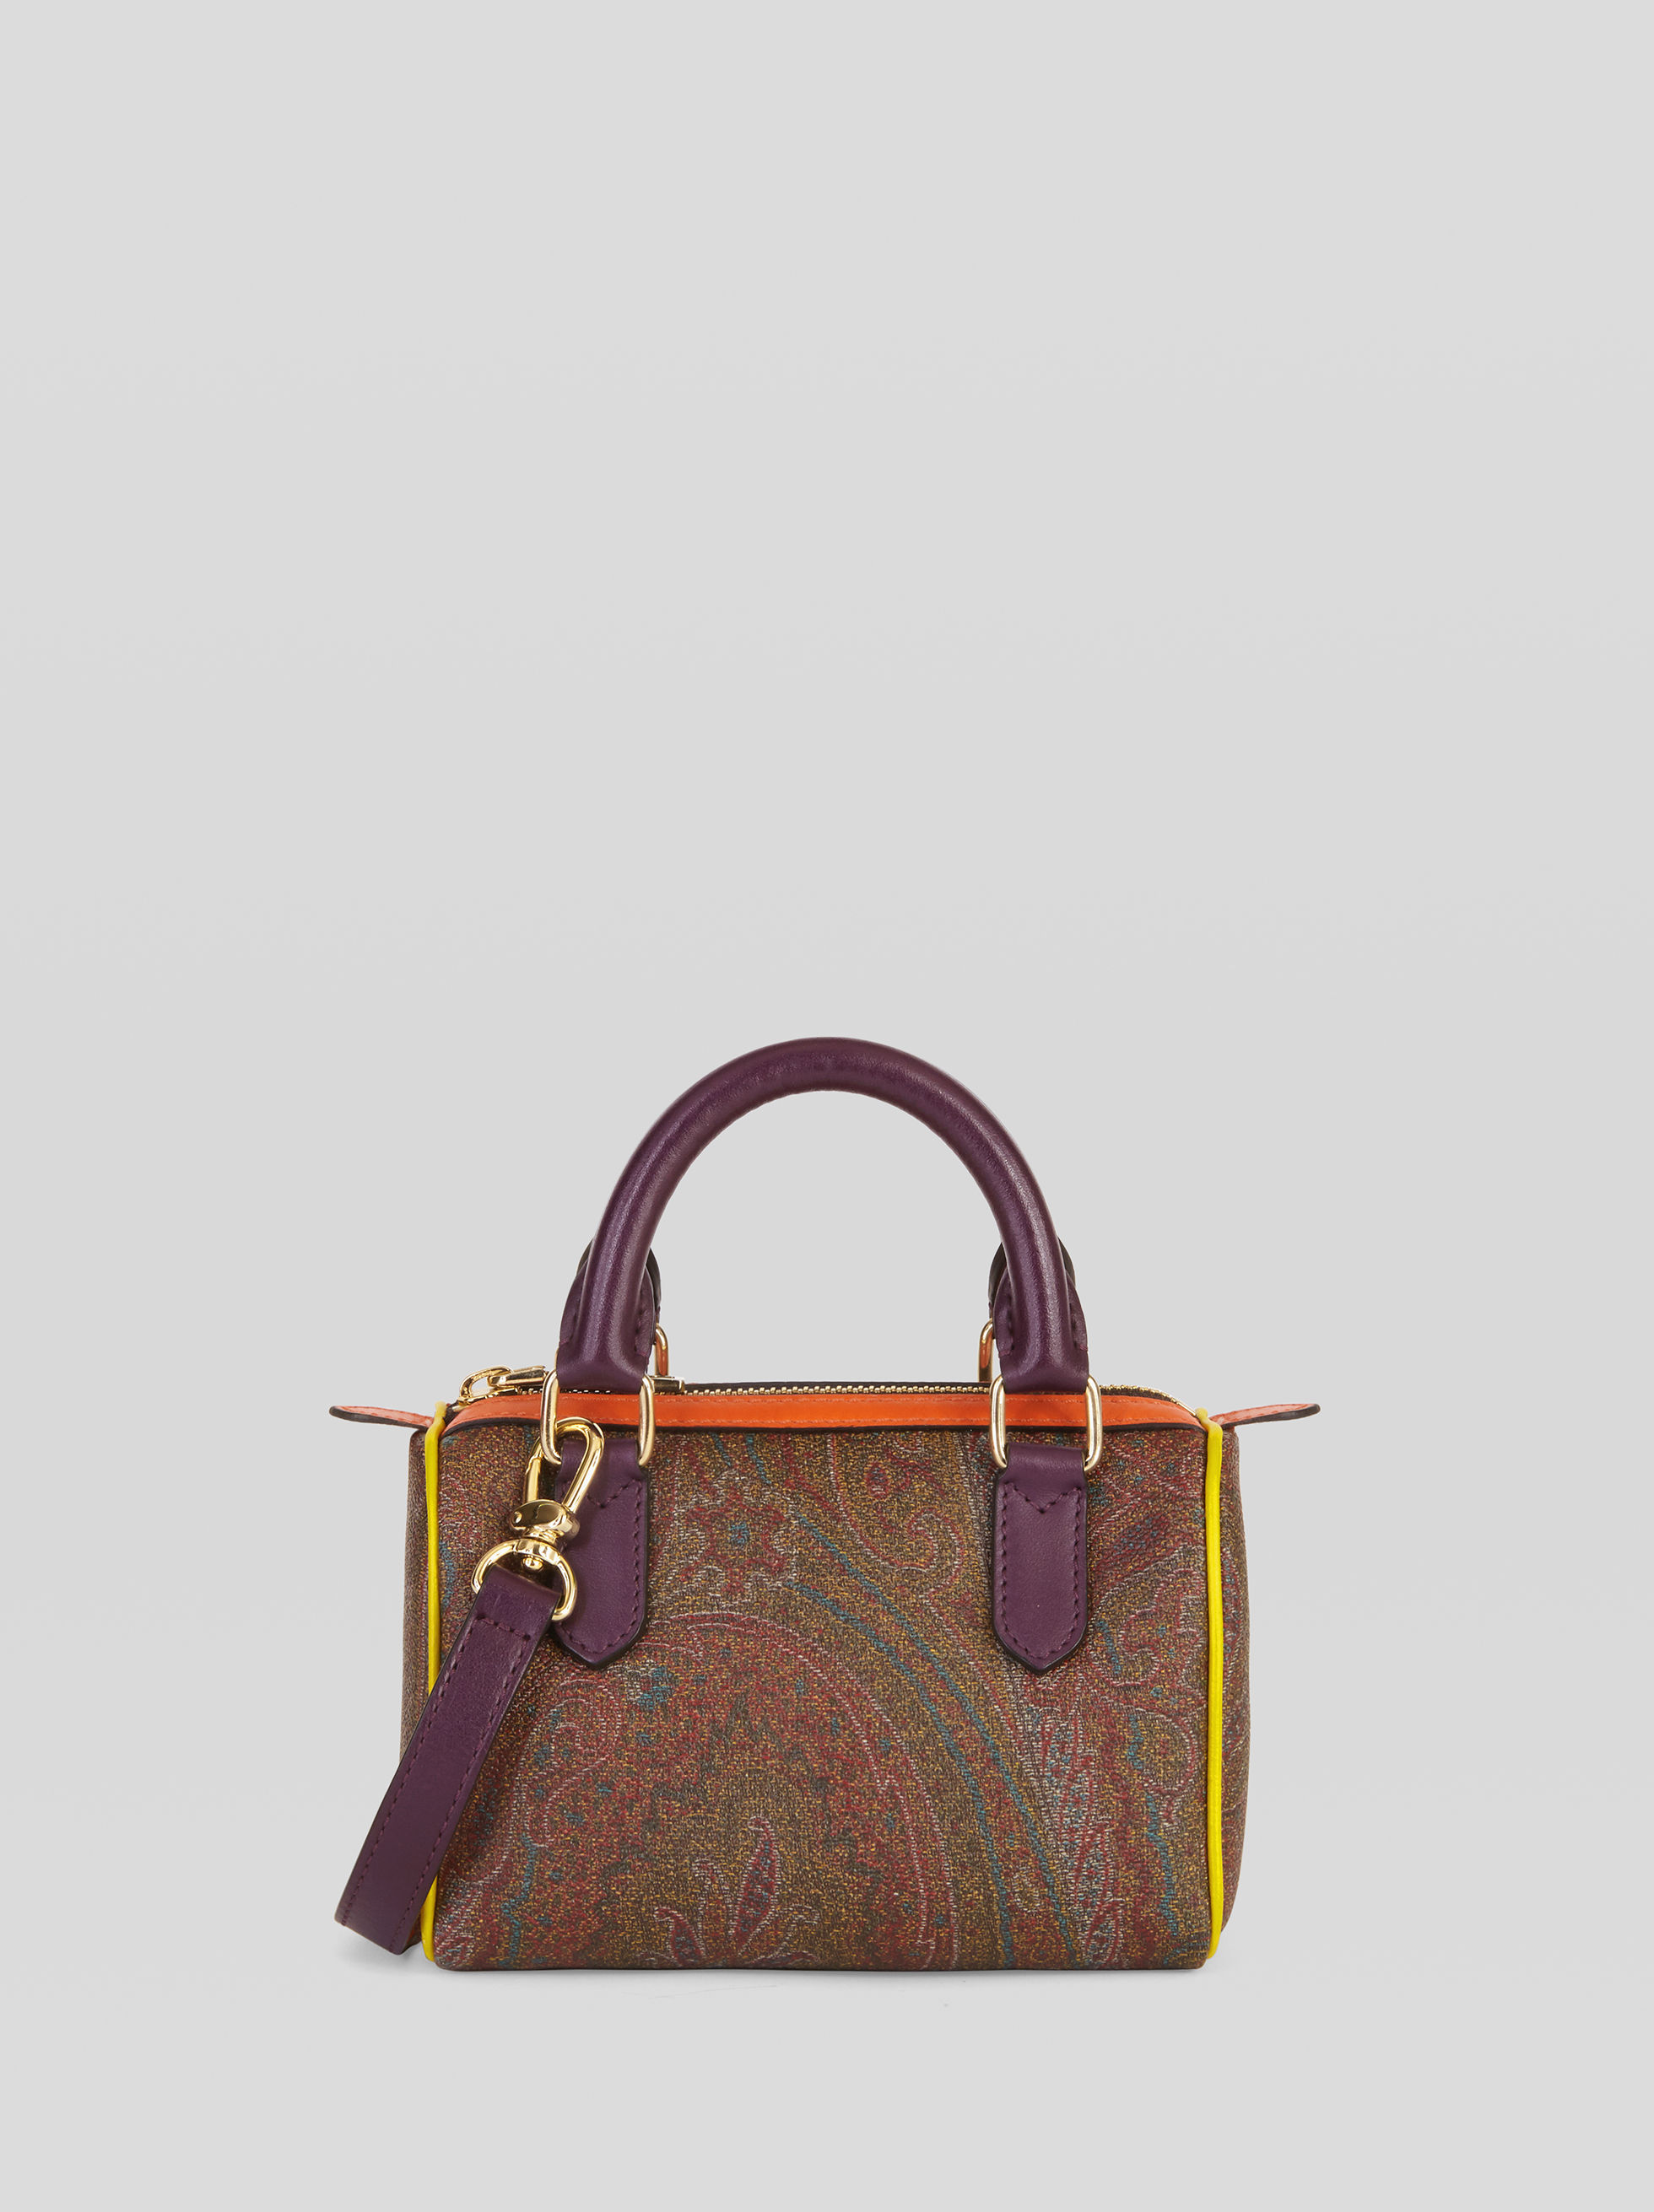 PAISLEY MINI BOSTON BAG WITH MULTICOLORED DETAILS